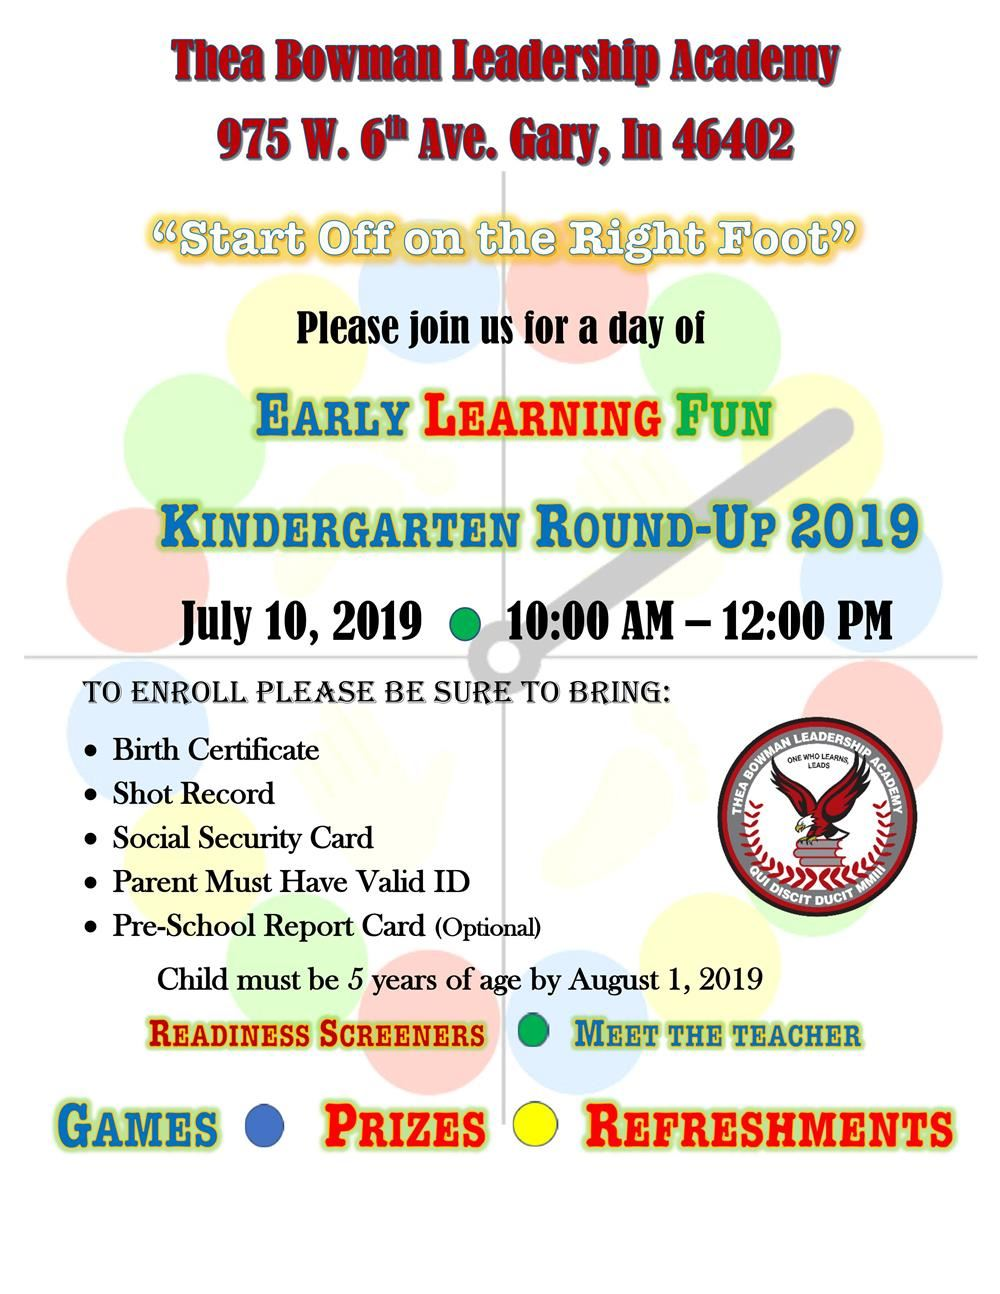 Join us for food, games and family fun at TBLA Elementary's Kindergarten Roundup.